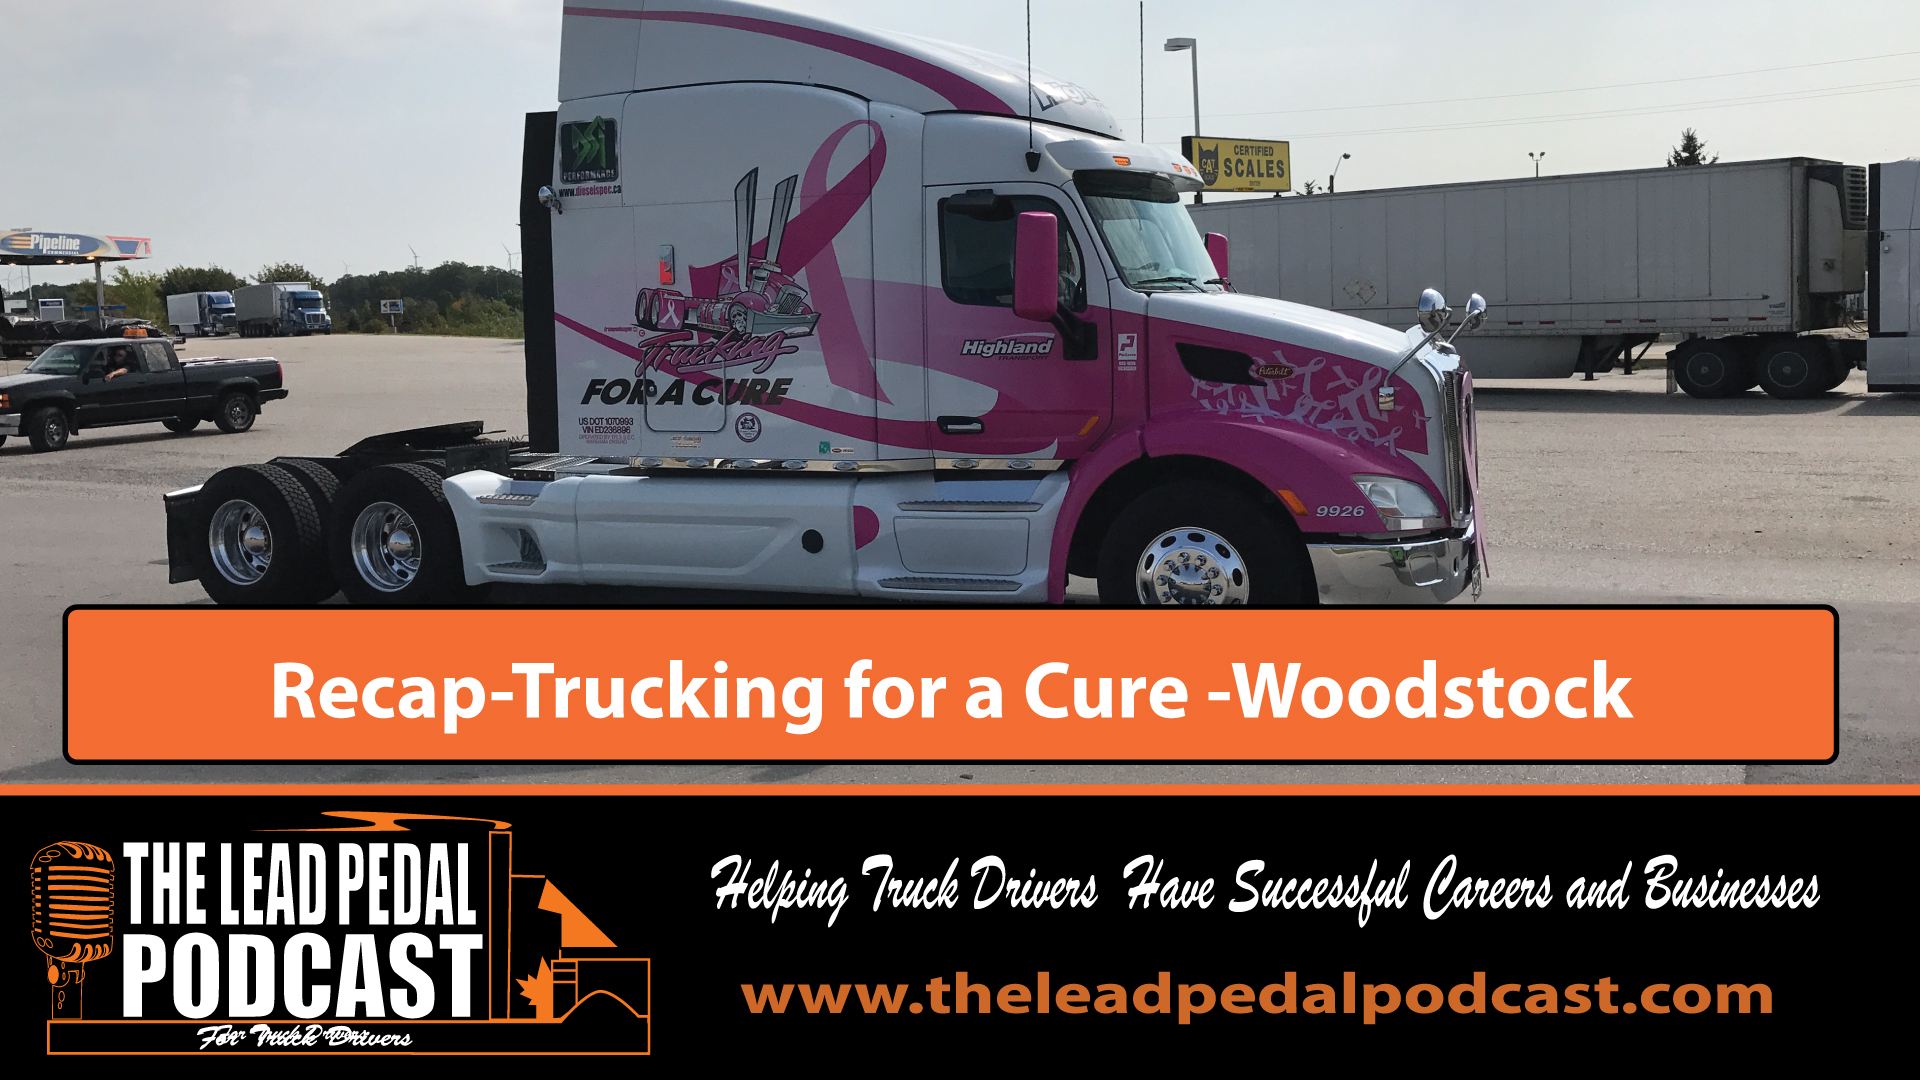 Trucking for a Cure 2019